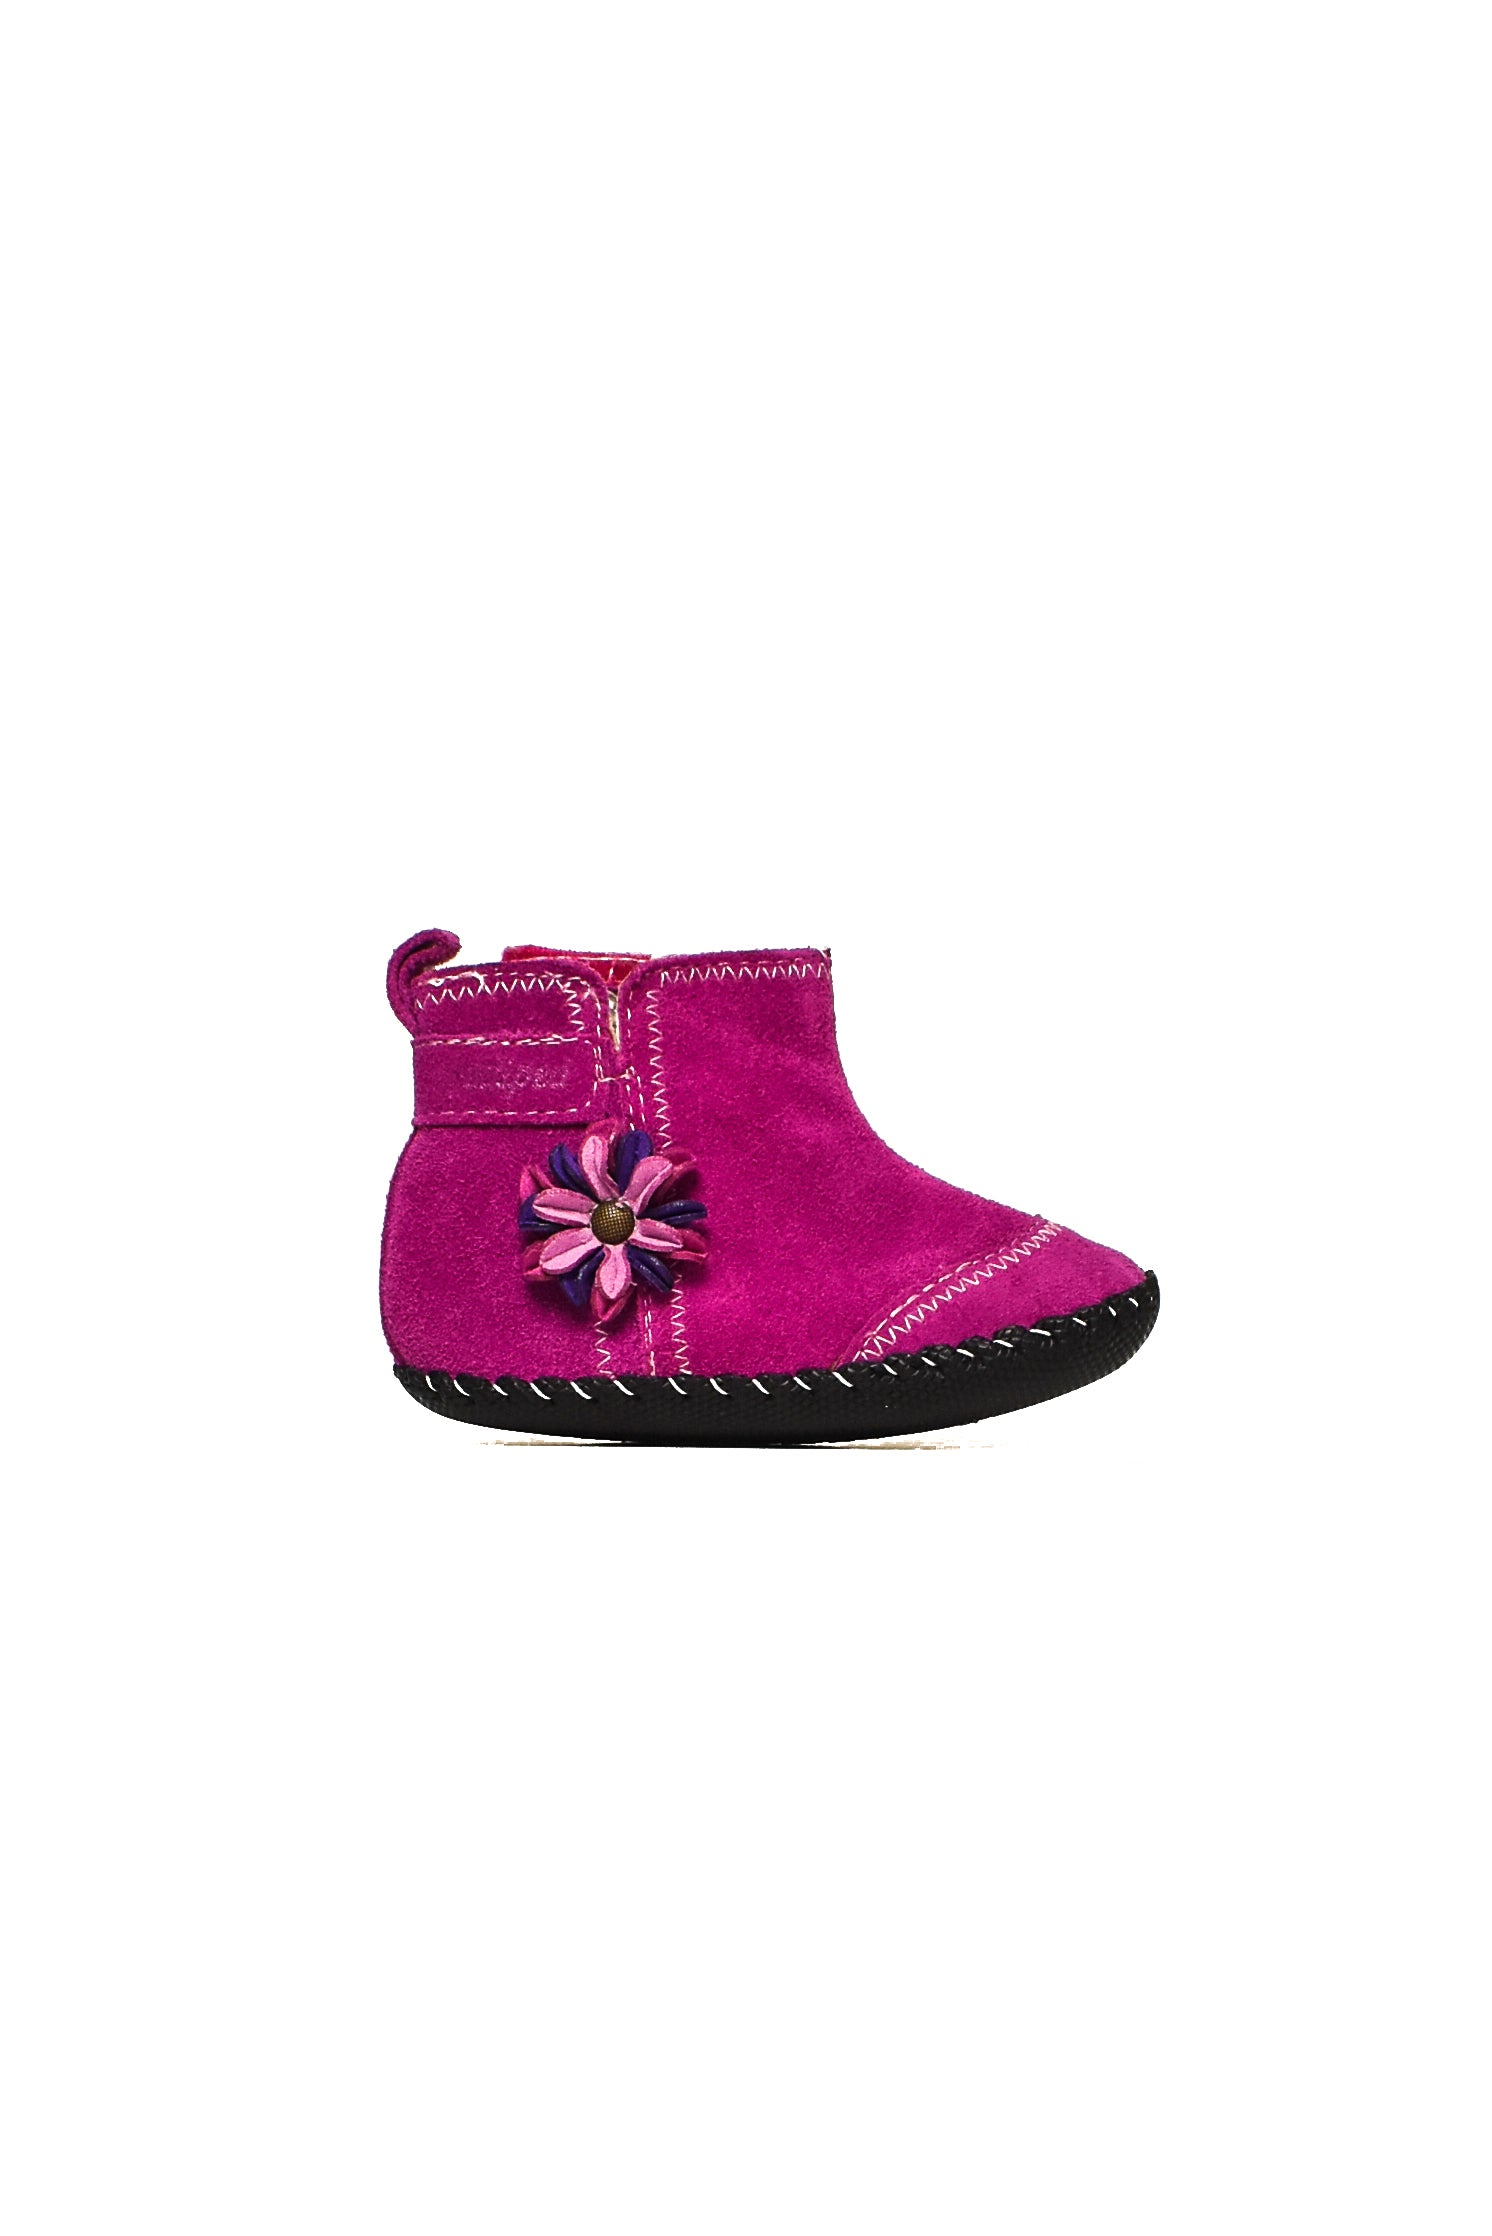 10007992 pediped Baby~ Boots 18-24M at Retykle